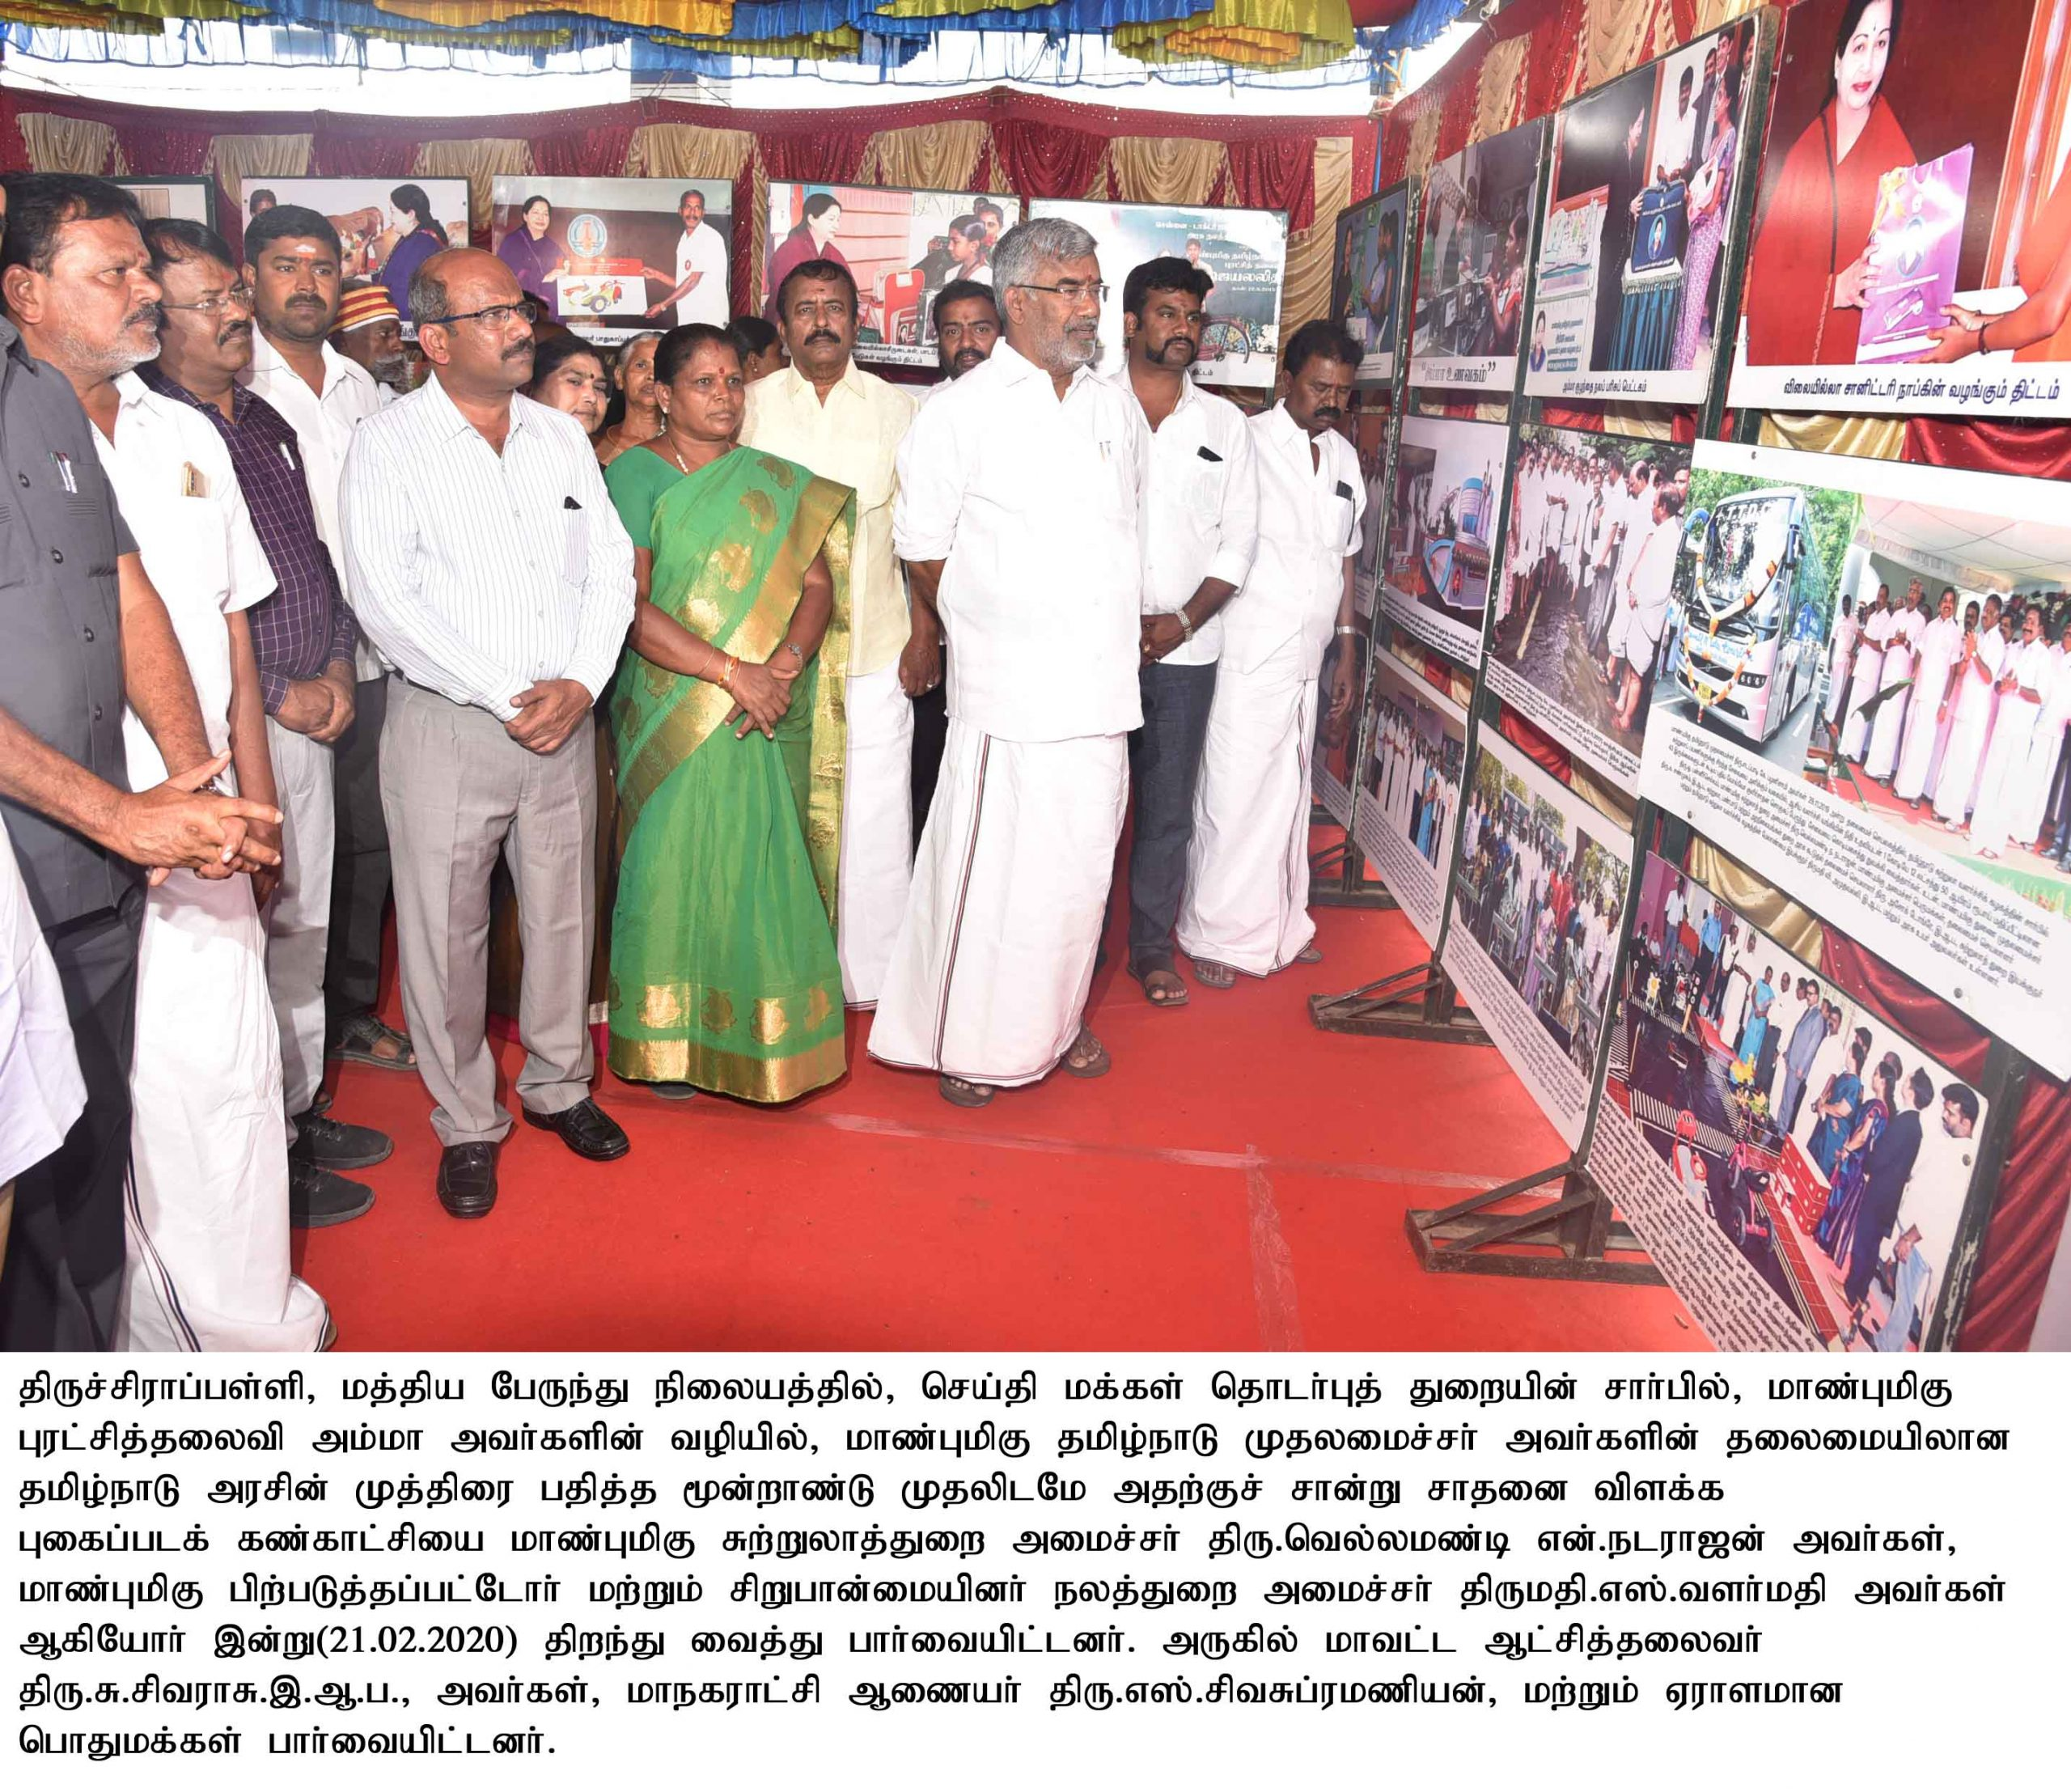 Govt. Photo Exhibition at Central Bus Stand 21-02-2020